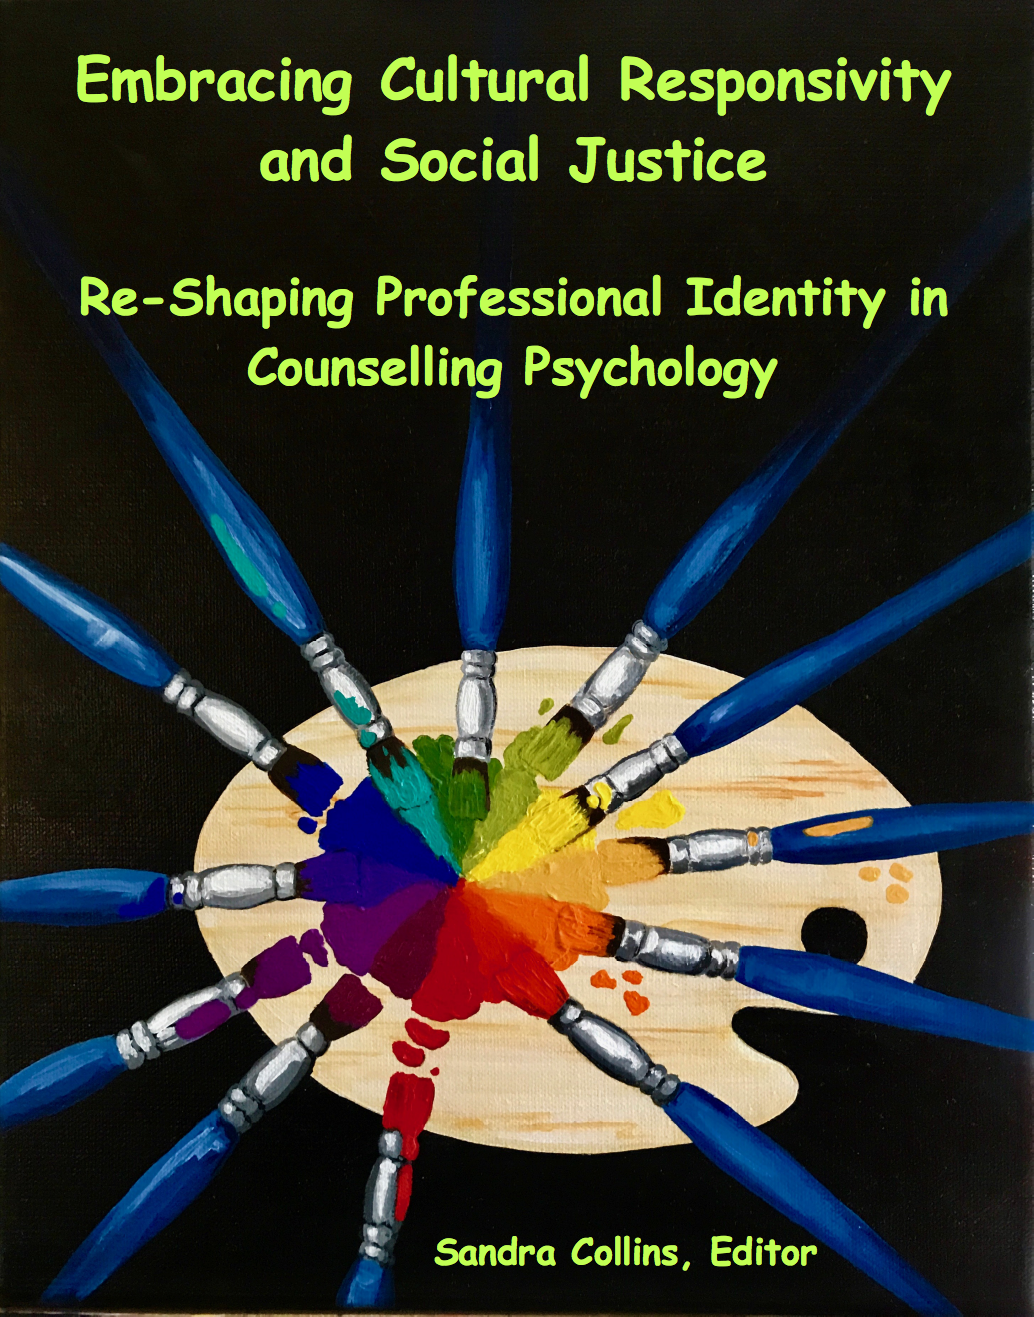 Cover image for Embracing Cultural Responsivity and Social Justice (PREVIEW)